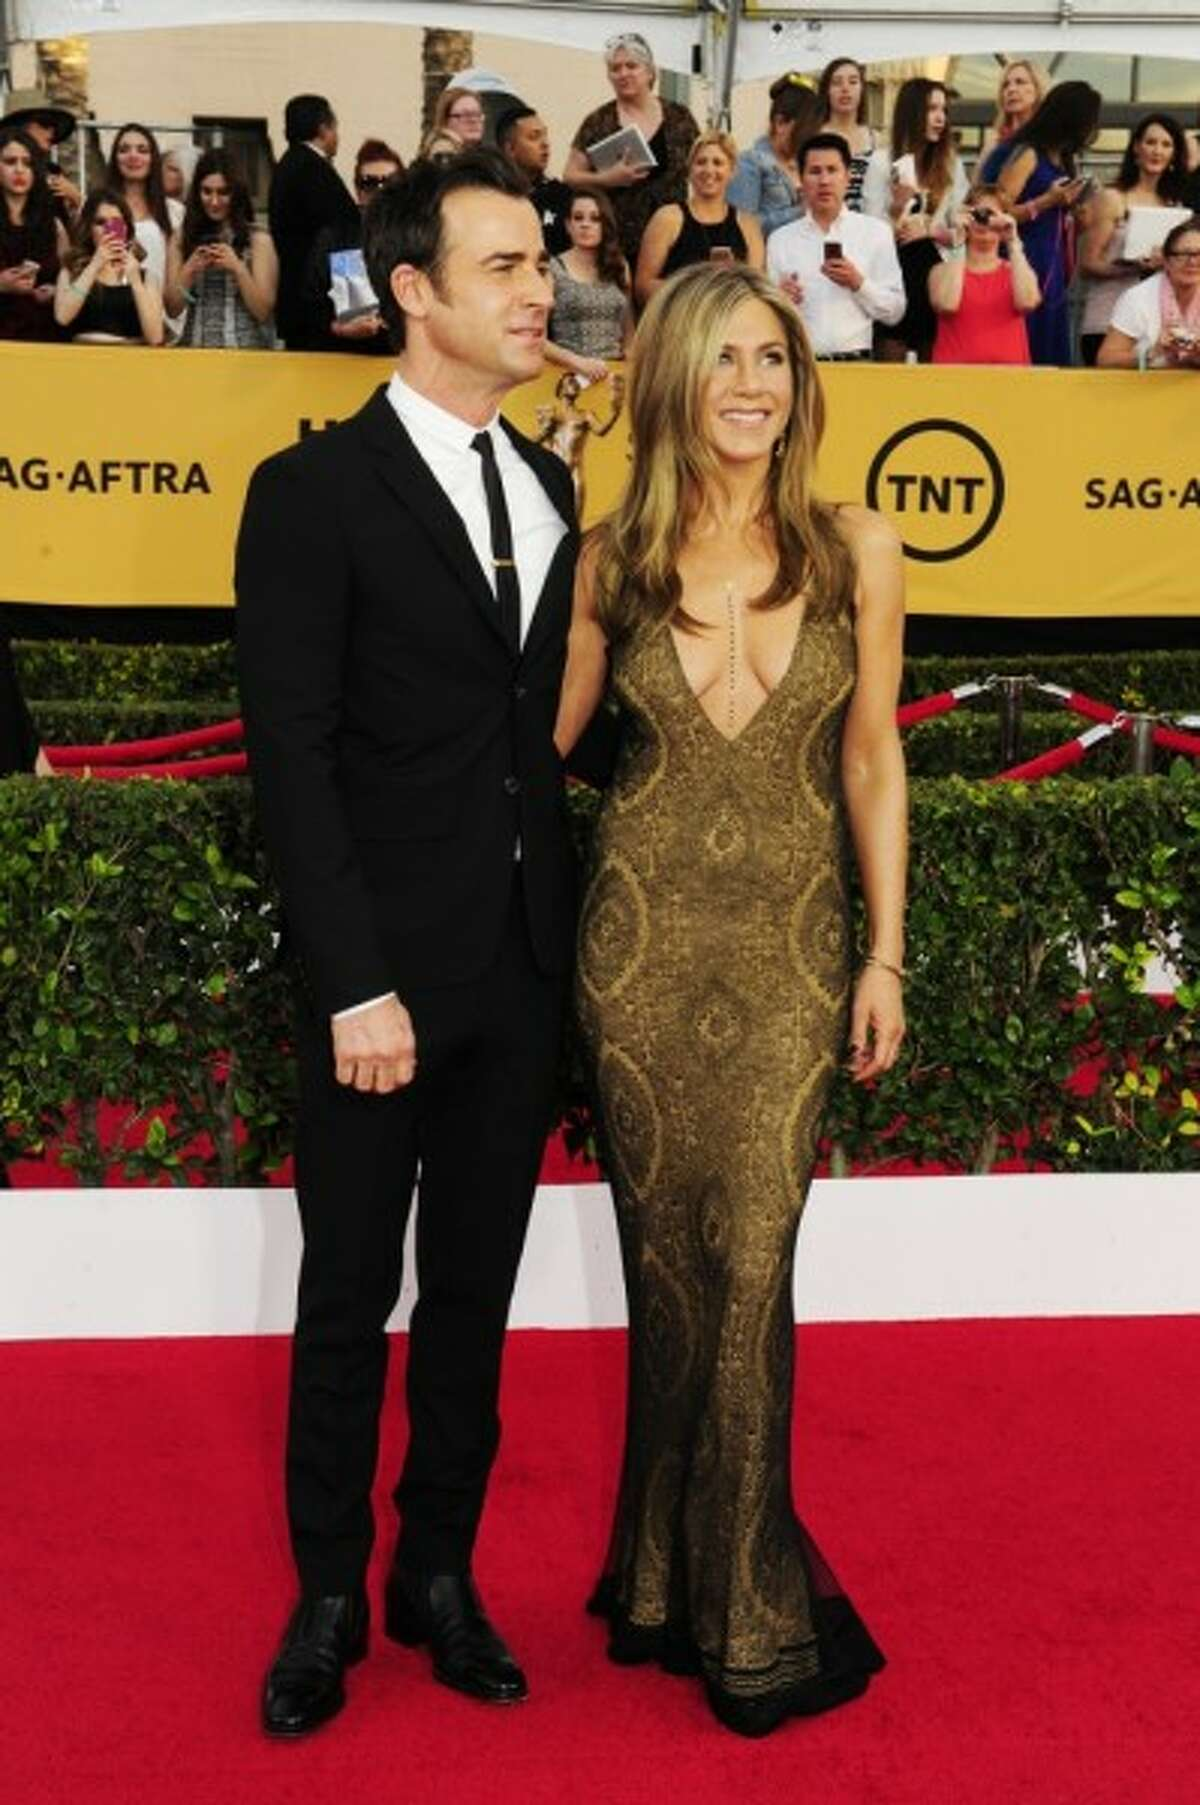 Actress Jennifer Aniston married Justin Theroux in 2015.